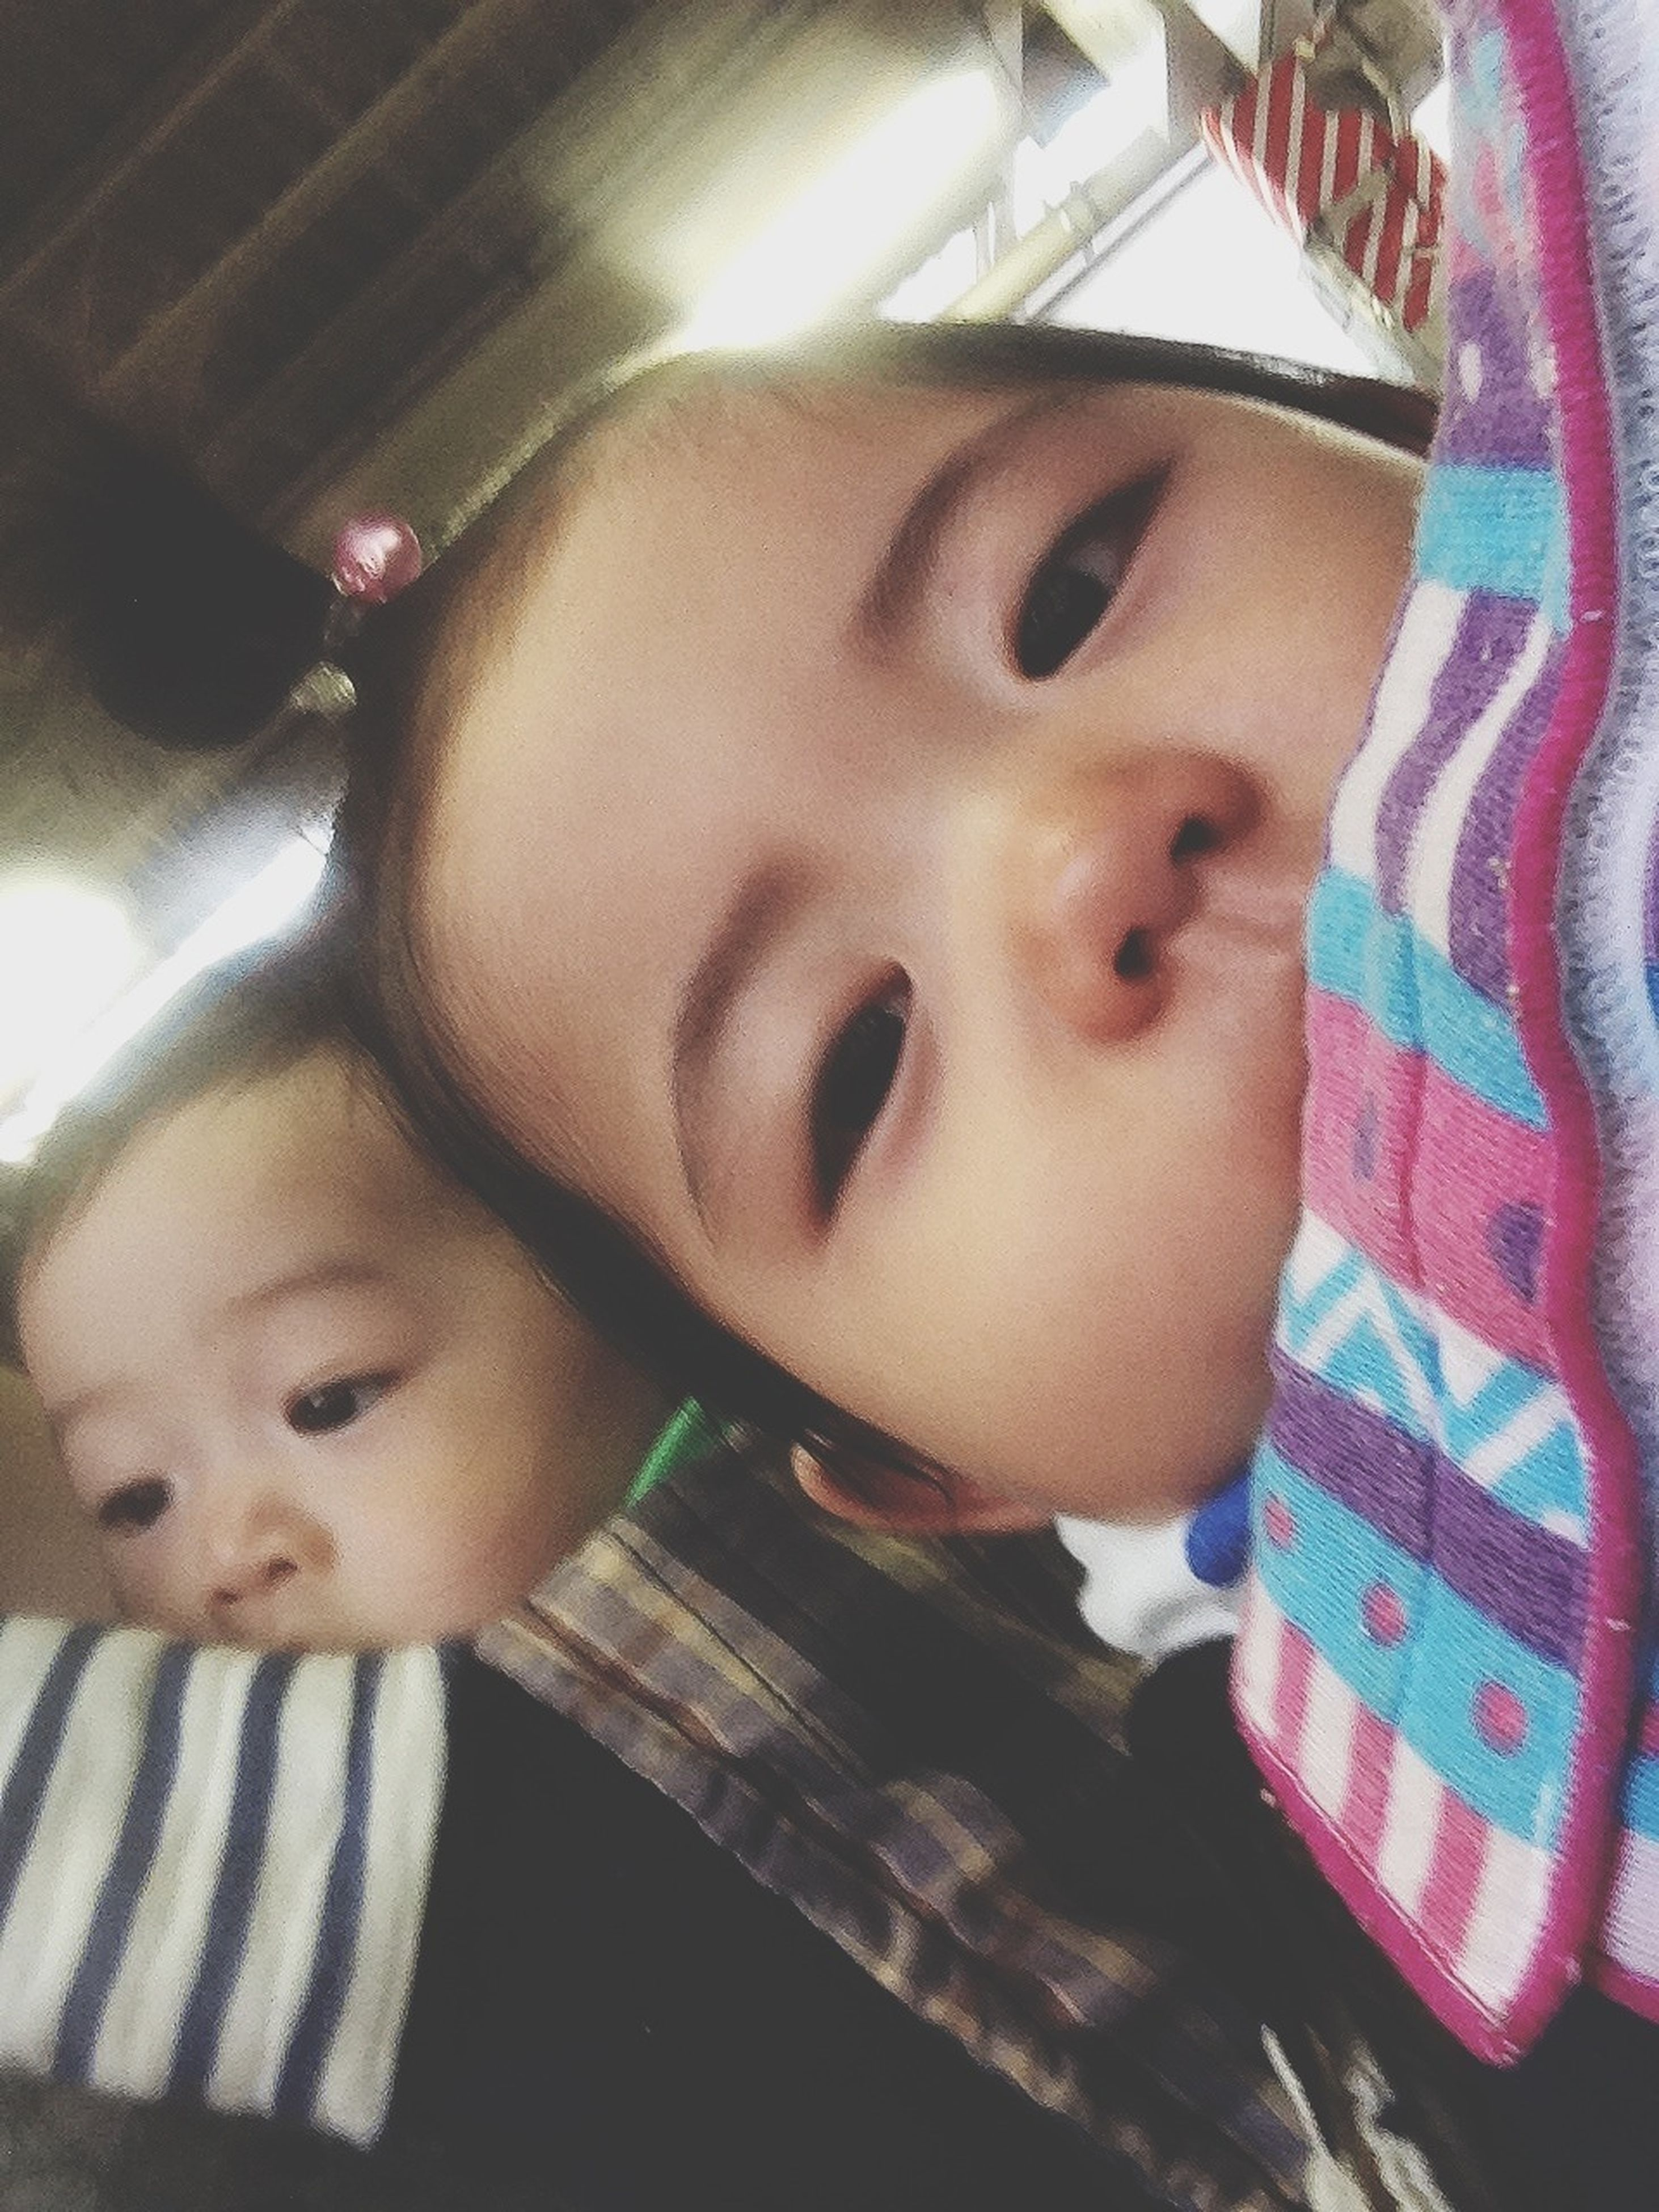 childhood, indoors, innocence, cute, elementary age, person, girls, boys, babyhood, home interior, baby, looking at camera, portrait, toddler, headshot, lifestyles, leisure activity, close-up